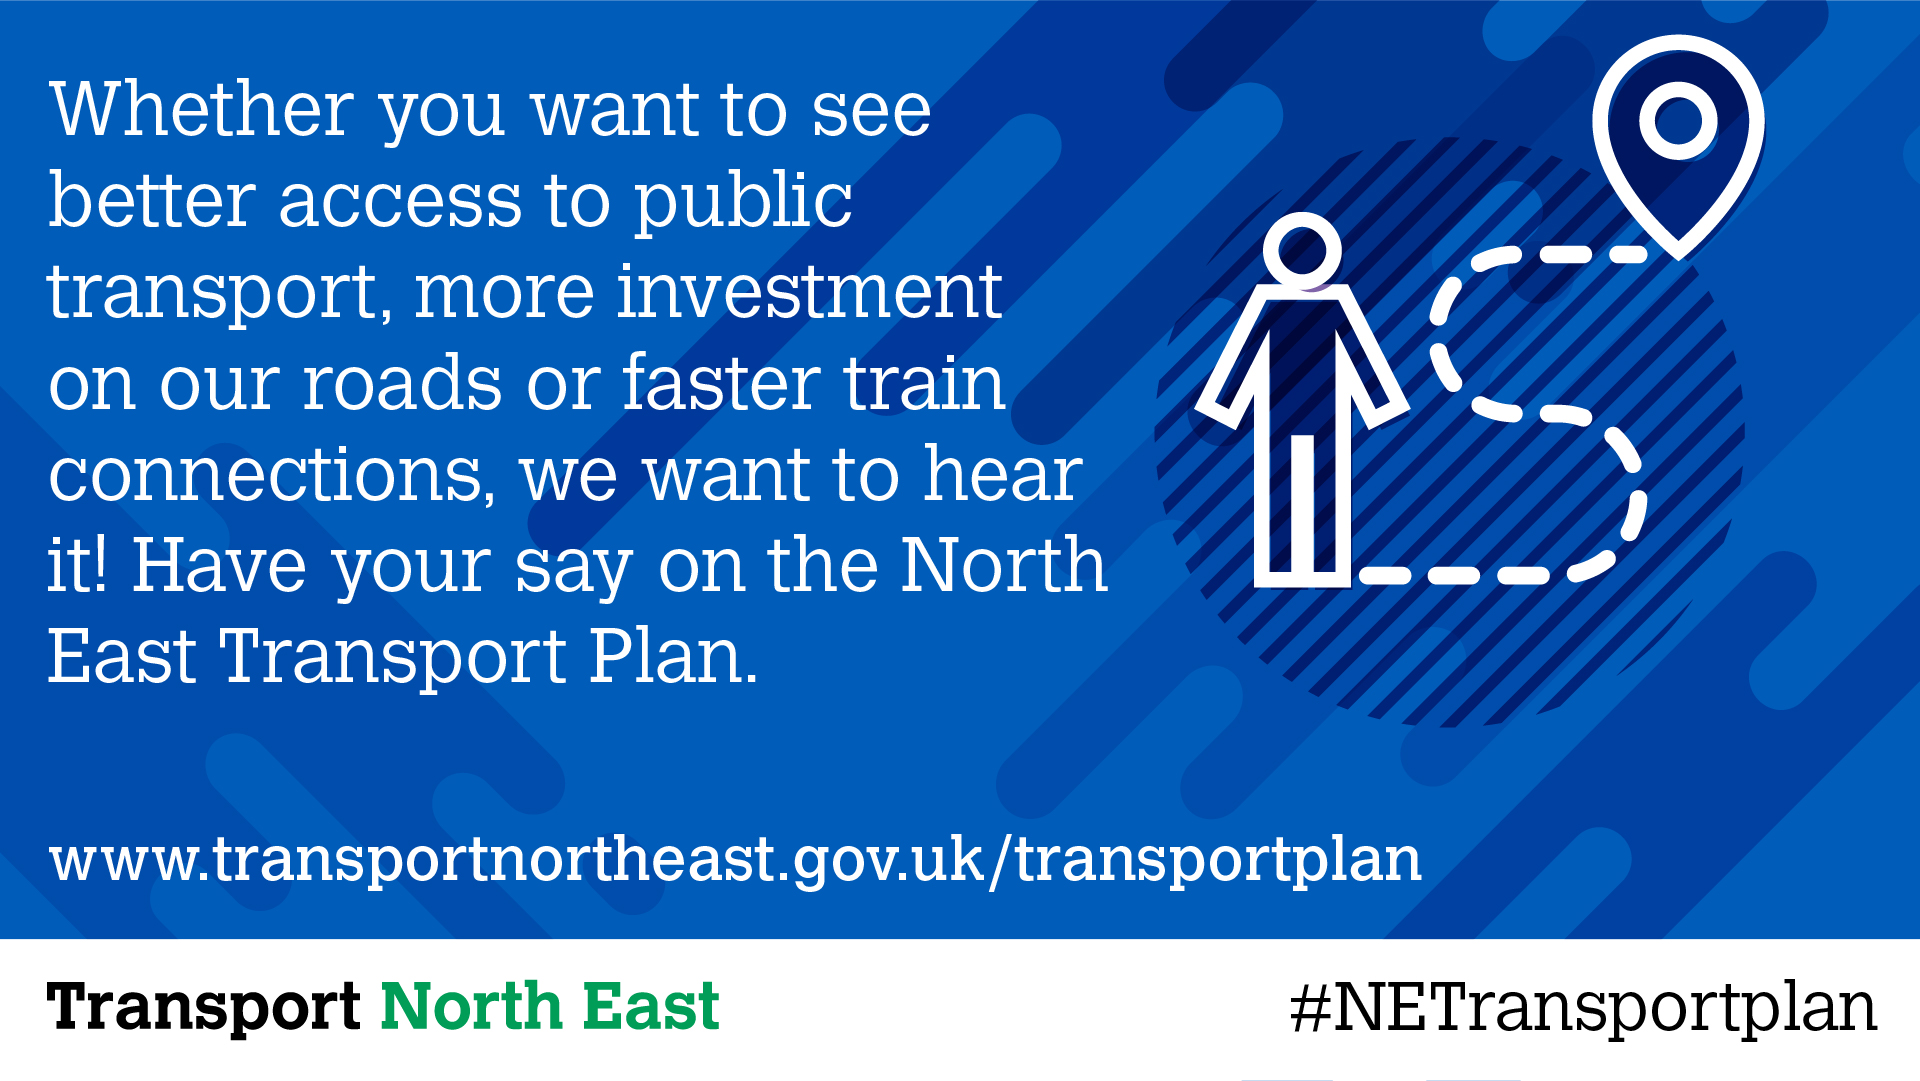 Regional Transport Plan consultation – have your say until 14 January 2021